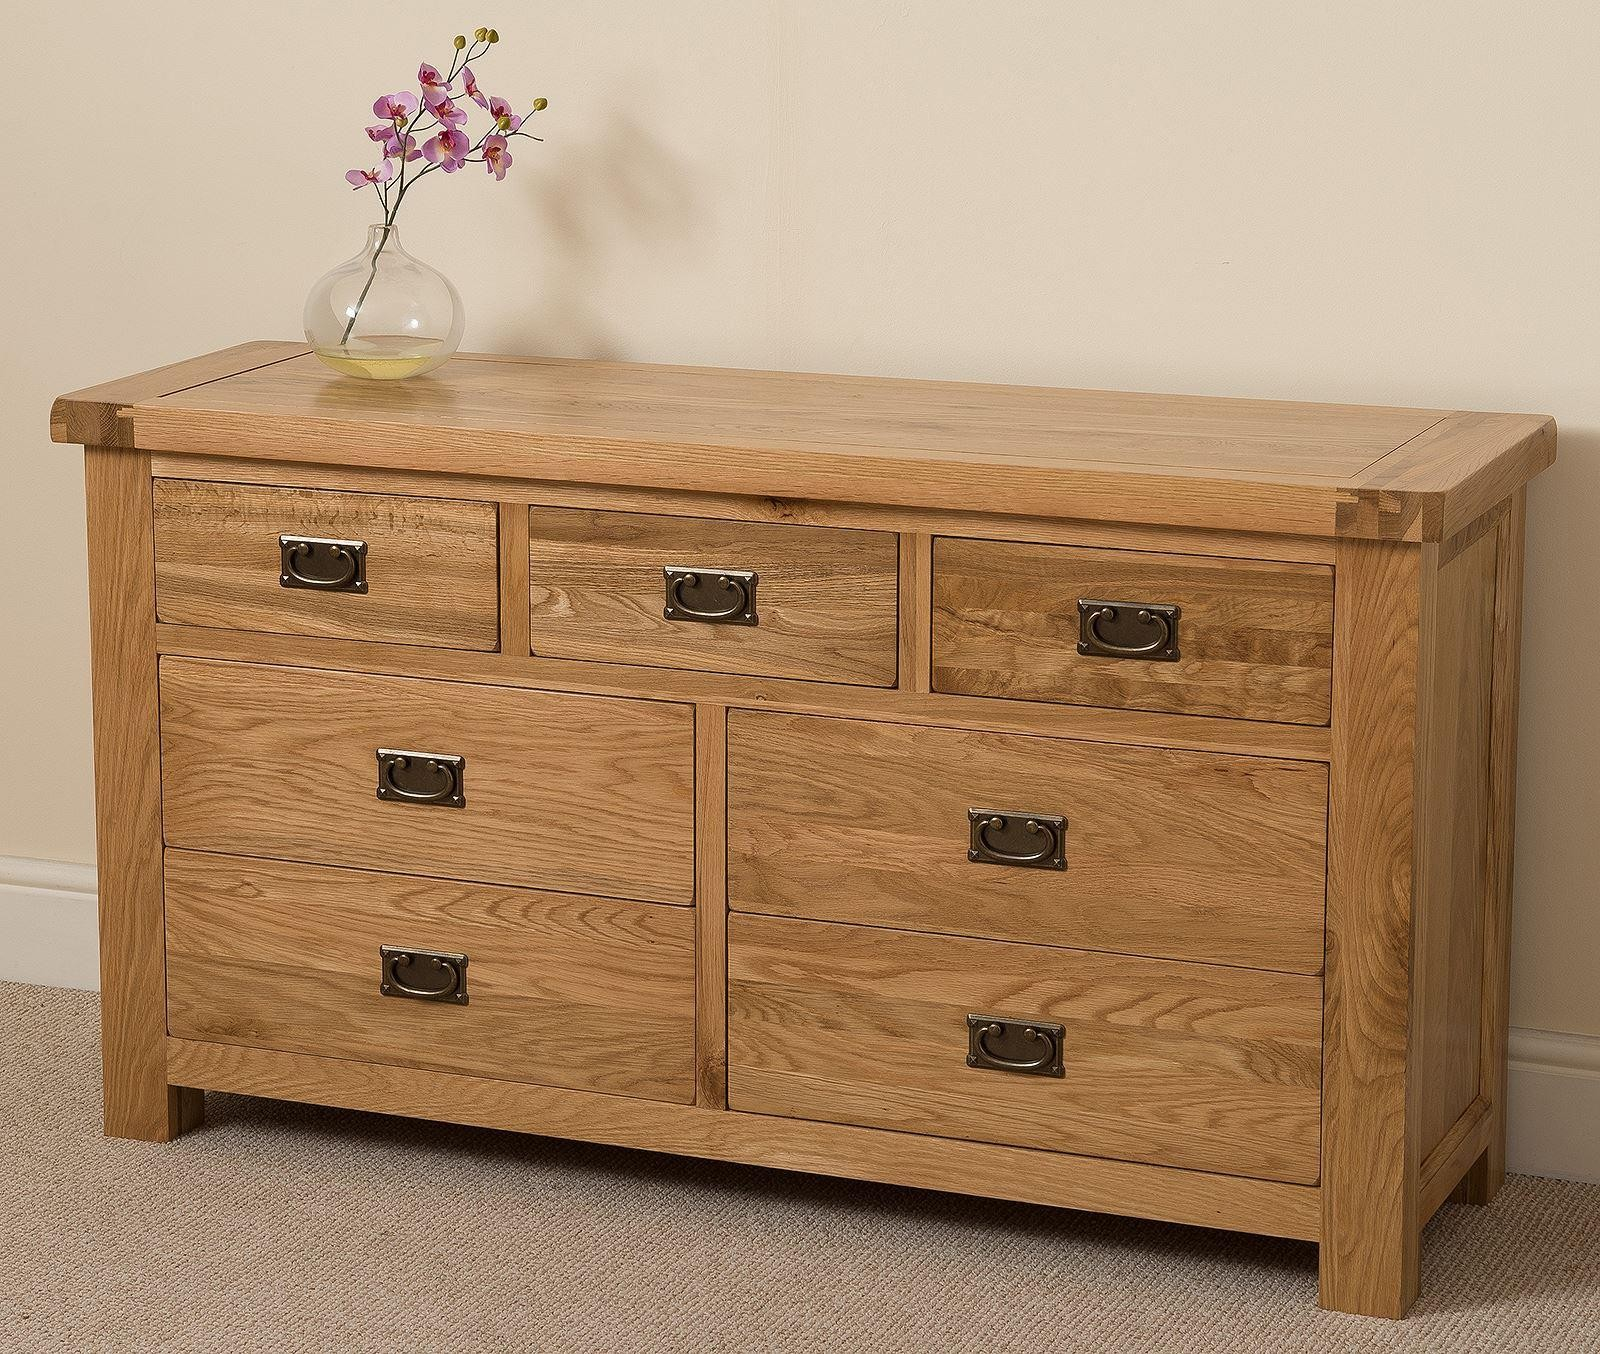 Cottage Light Solid Oak Chest of Drawers [3+4 drawer]